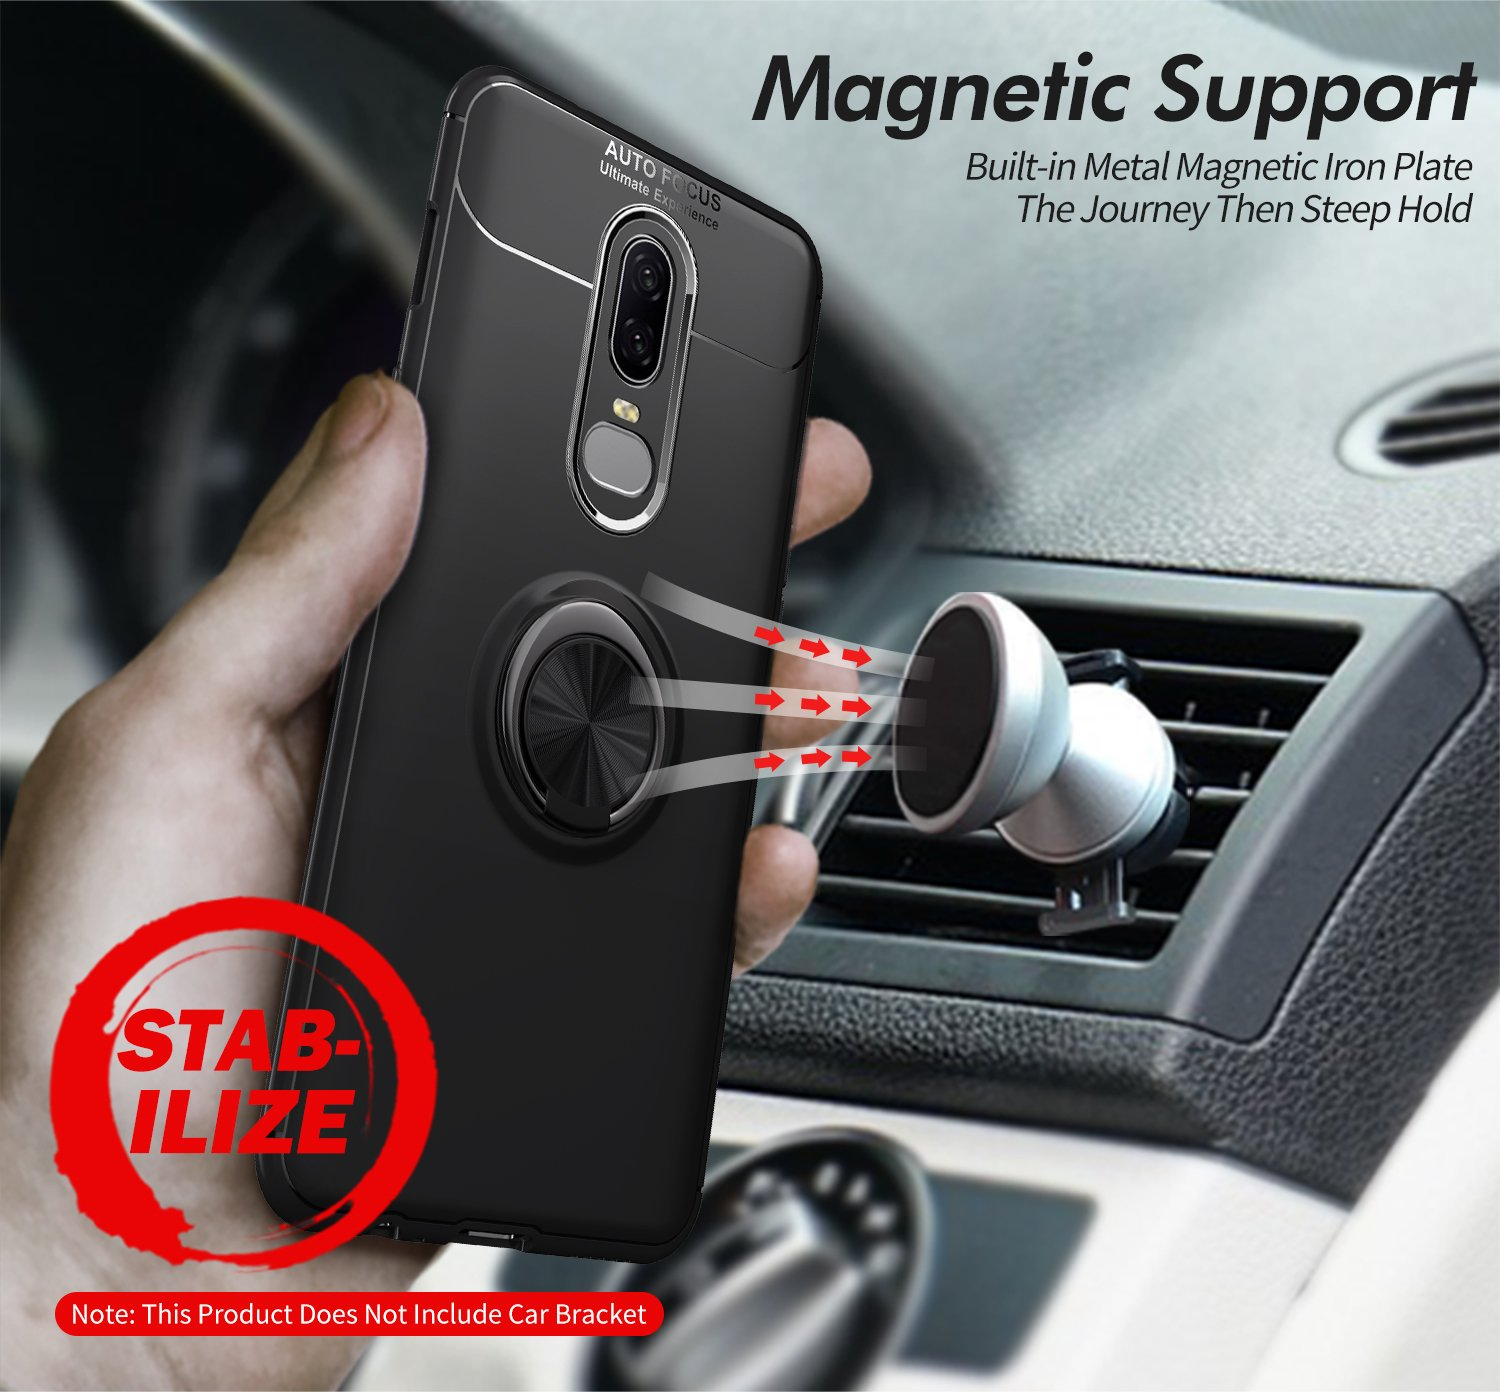 OnePlus 6T Case with HD Screen Protector,I VIKKLY Slim Flexible and Durable Soft [TPU] 360 Degree Rotating Ring Kickstand Shockproof Case Fit Magnetic Car Mount for OnePlus 6T 6.4'' (2018) (Navy Blue) by I VIKKLY (Image #7)